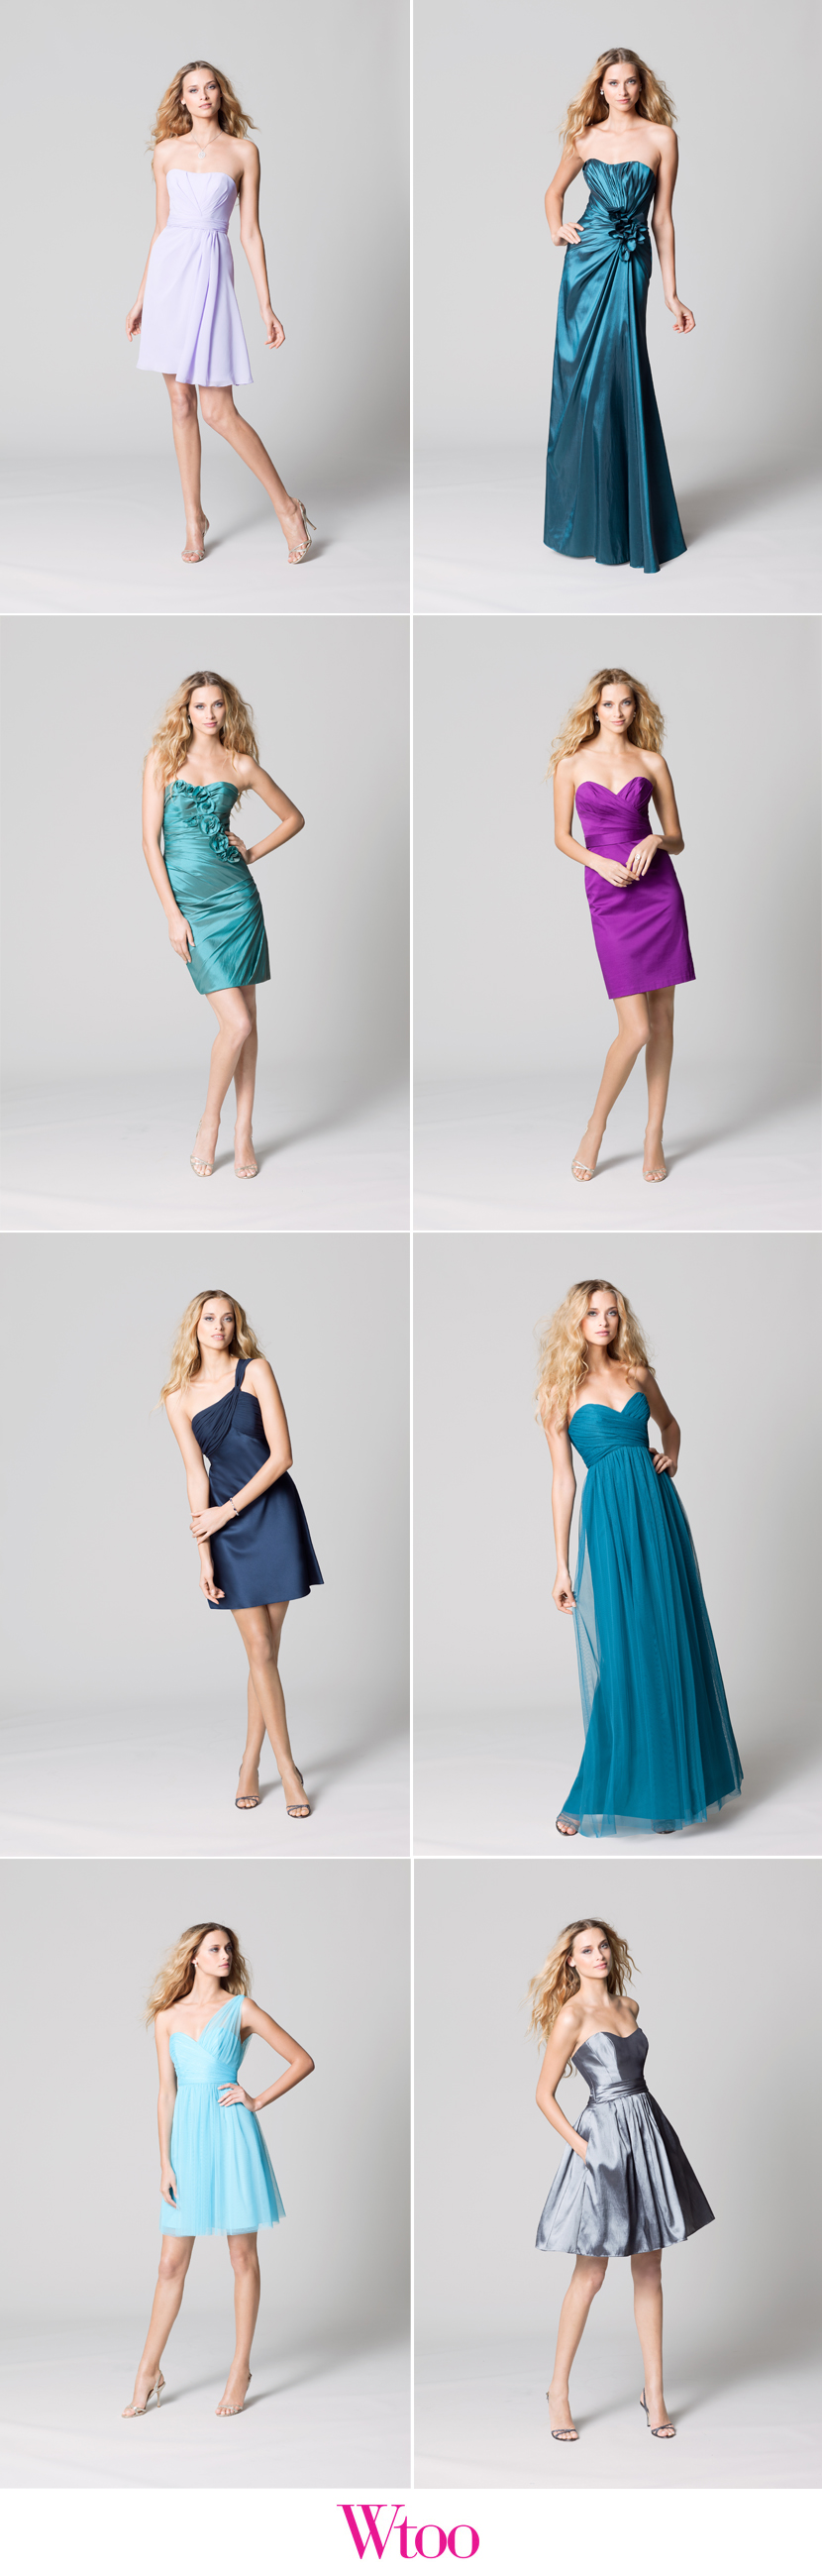 Fall 2012 Wtoo bridesmaid collection